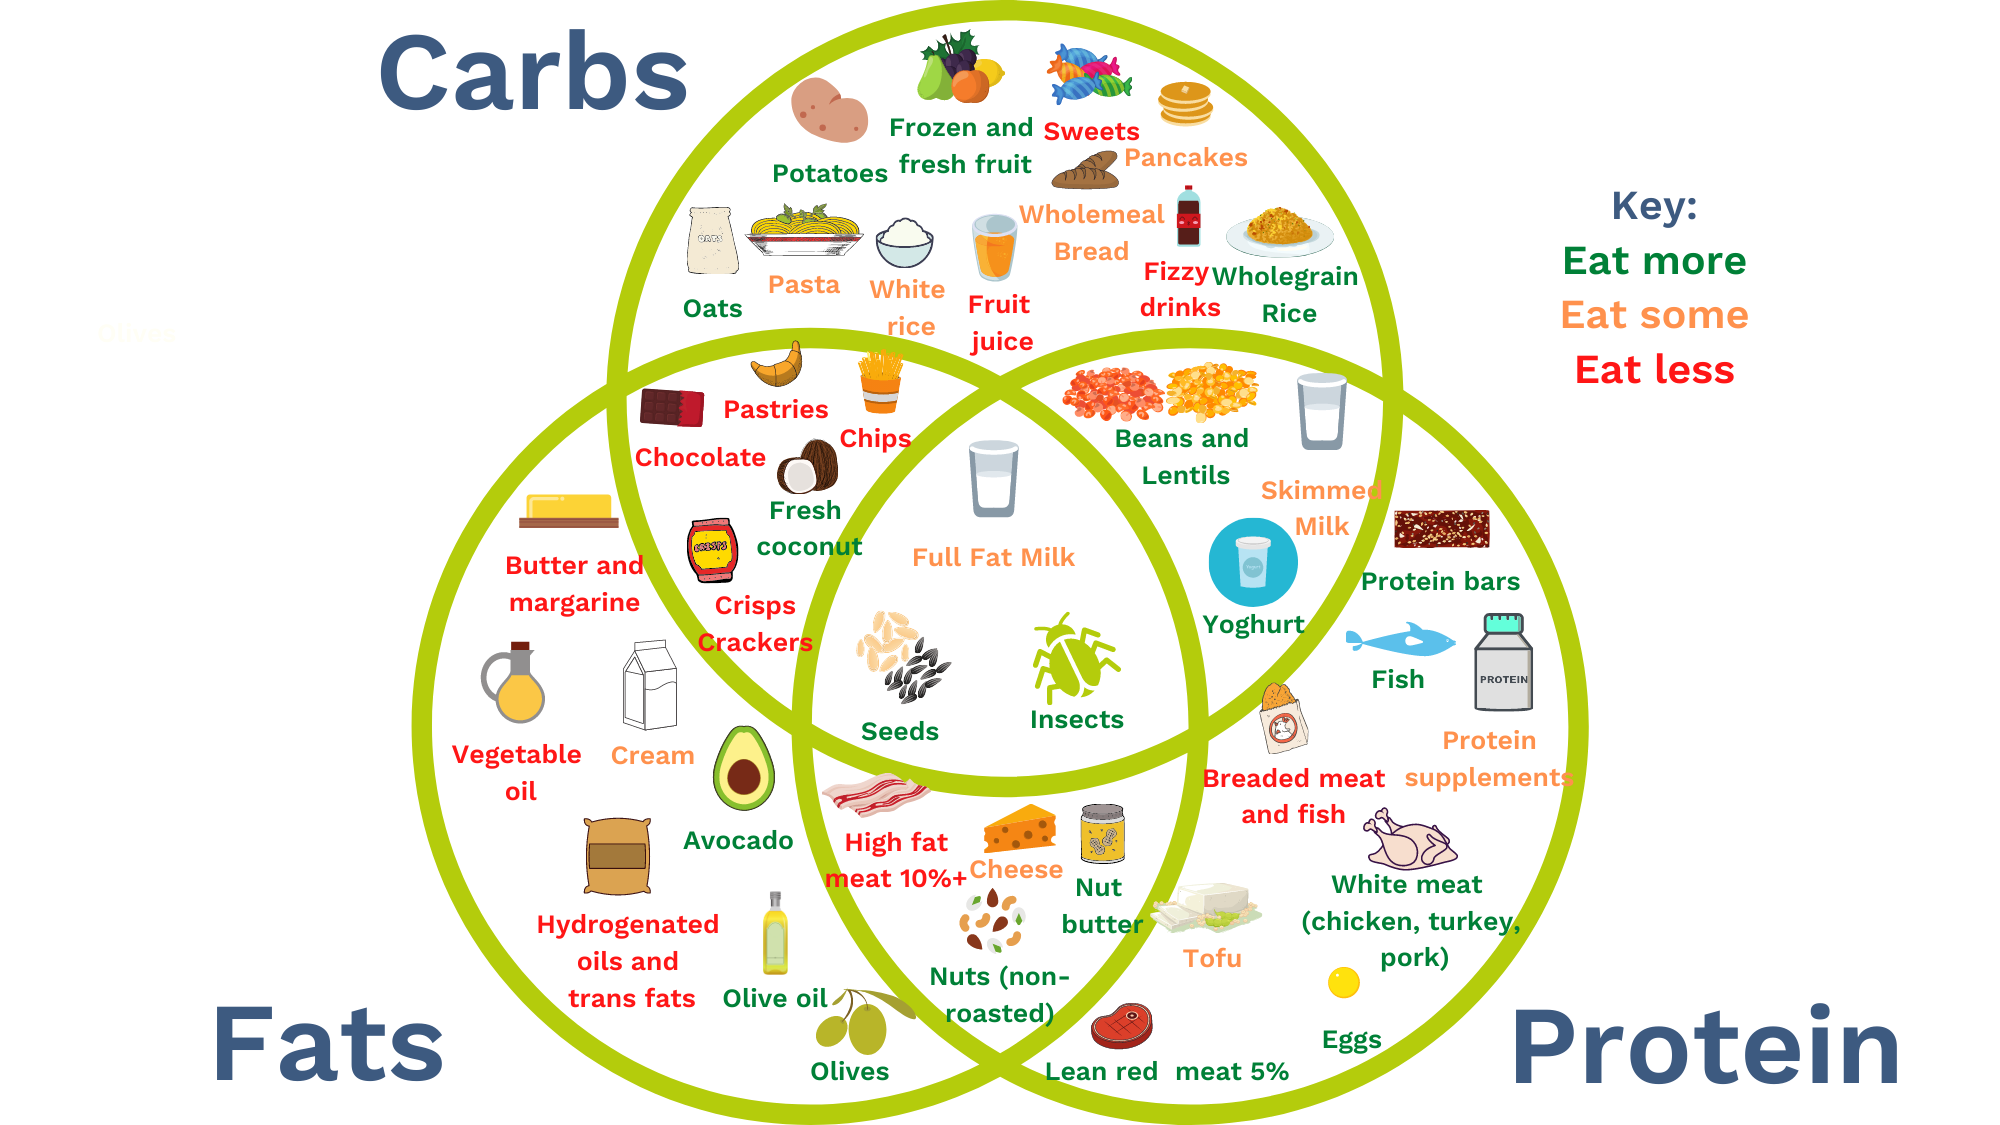 image of carbs fats and protein